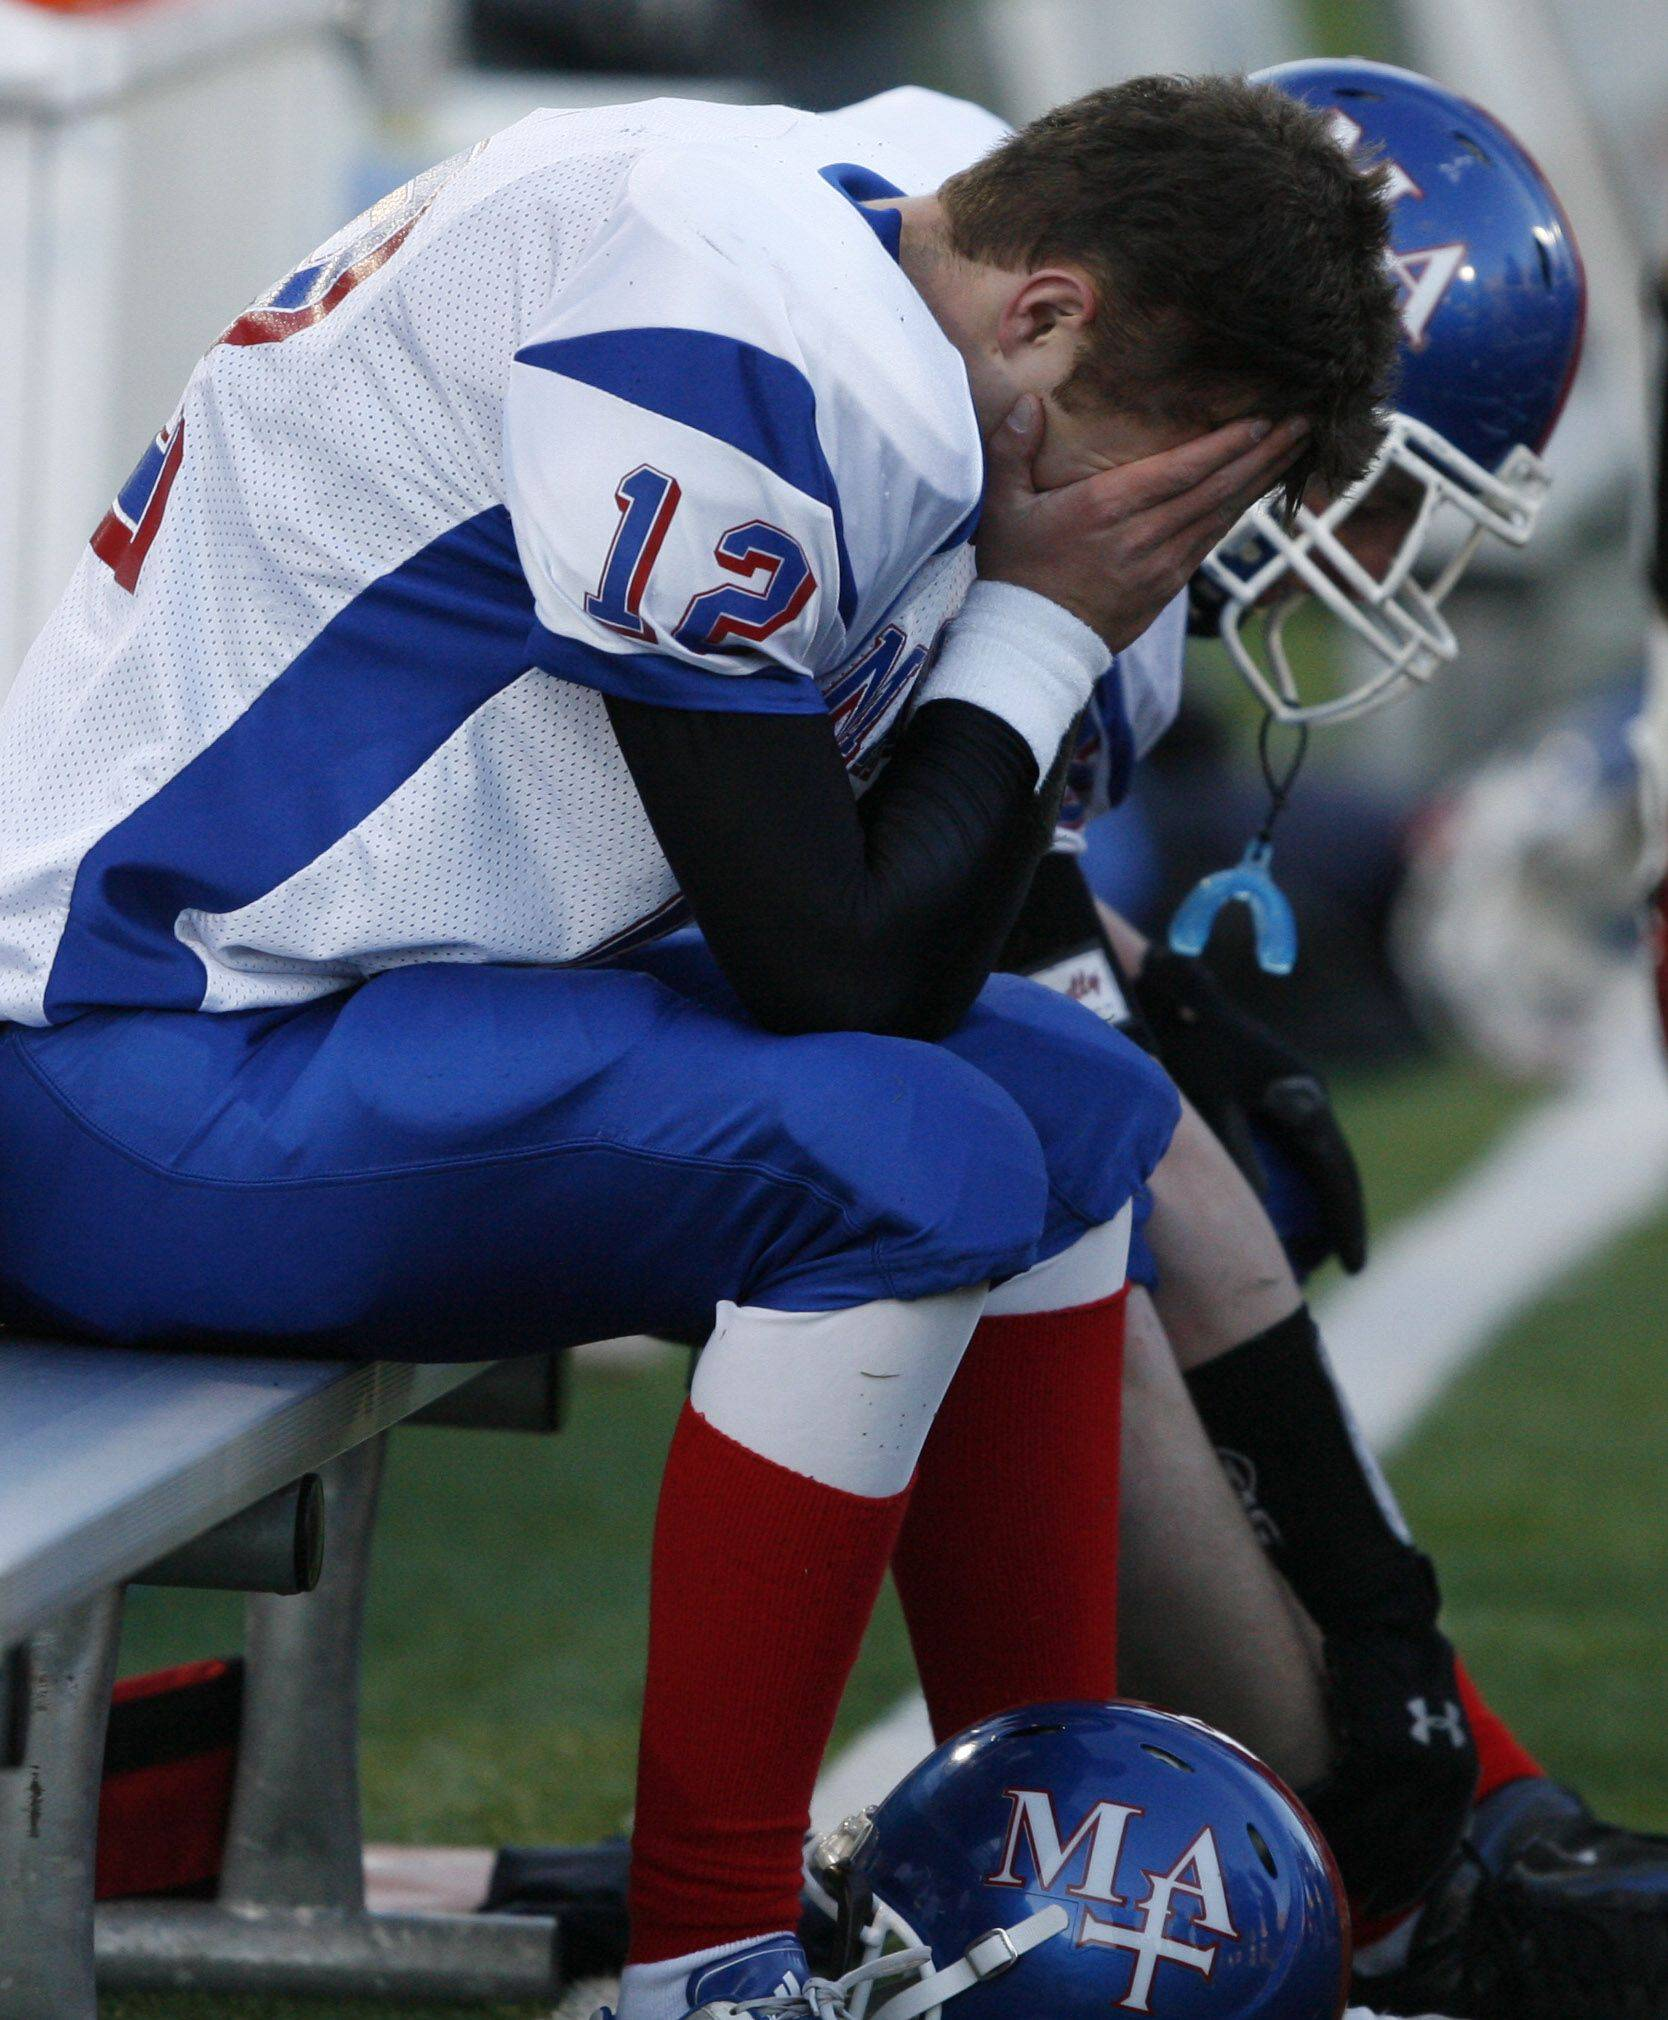 Marmion Academy's Bobby Peters can't look up at the score with seconds left on the game clock losing 48-19 to Rockford Boylan in 6A state title game in Champaign on Saturday, November 27.